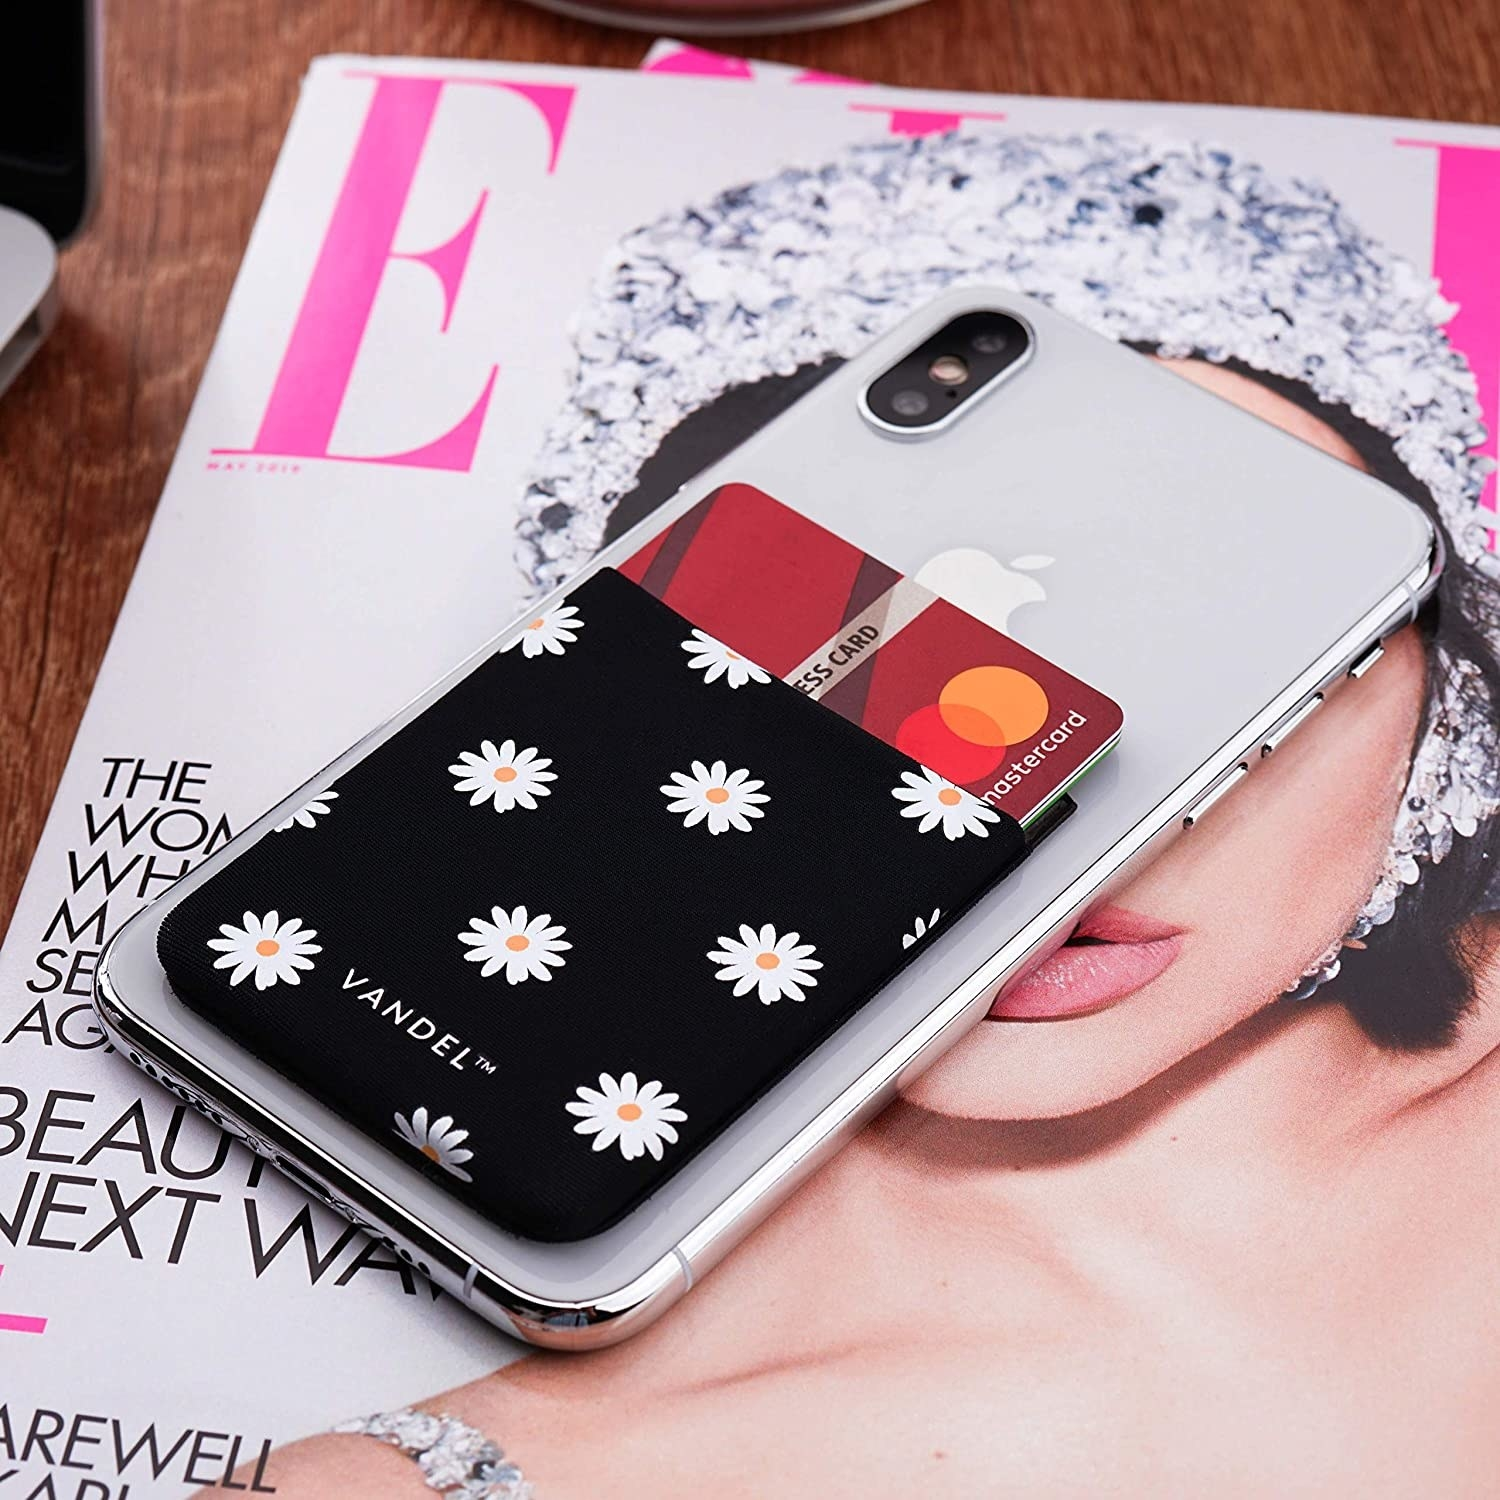 phone with the black and white daisy print pocket on the back